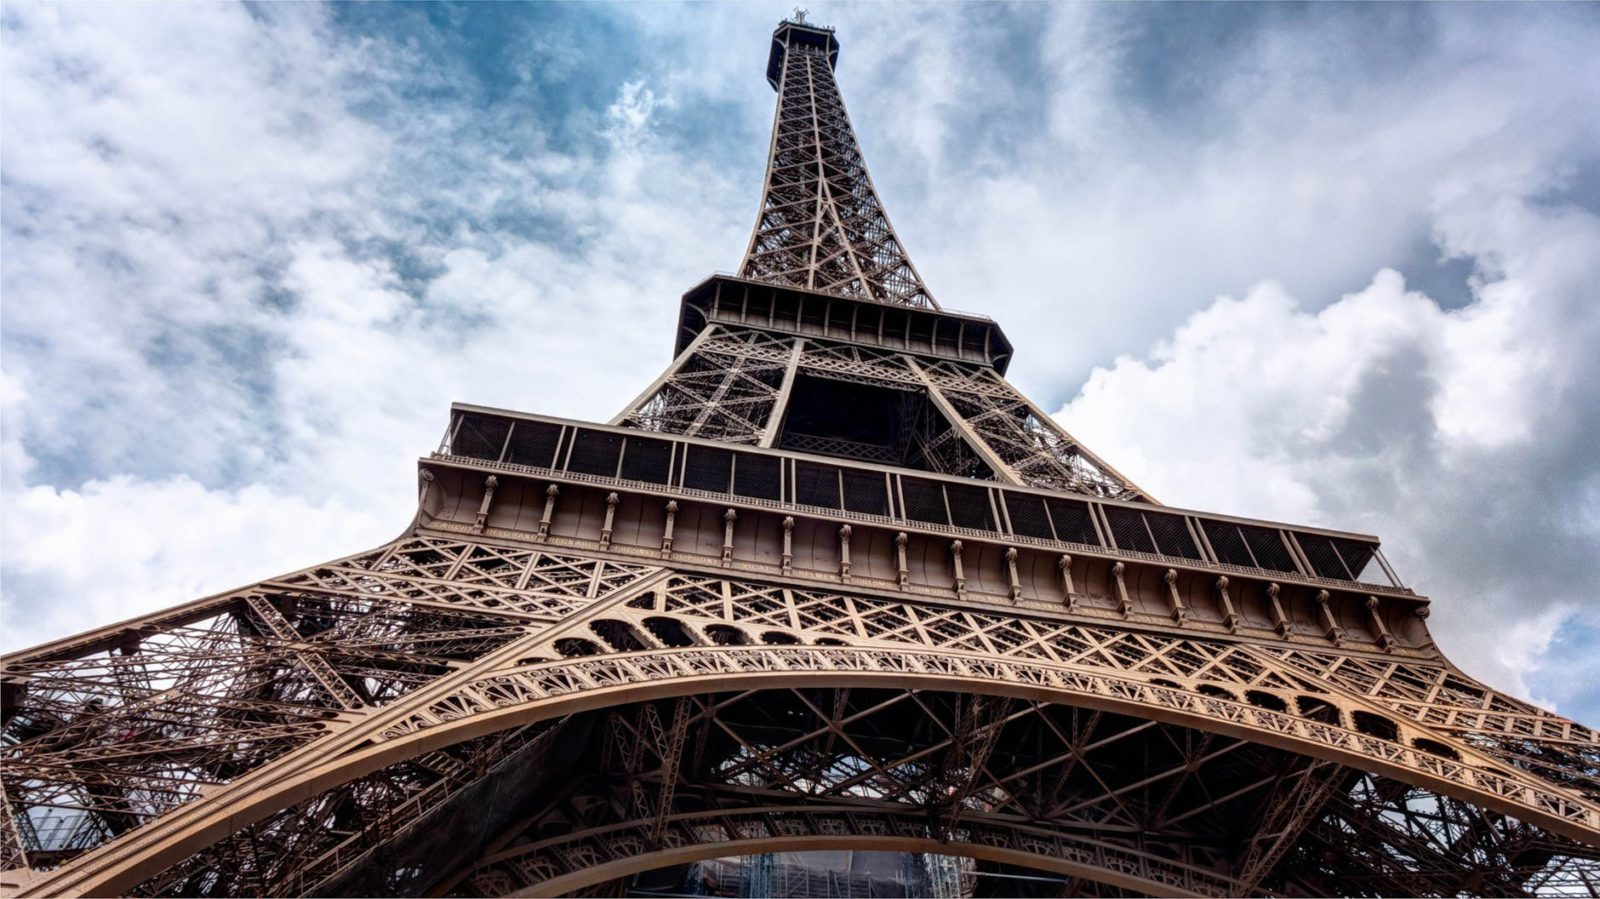 Flight Deal Round Trip From San Francisco Area to Paris #sanfrancisco #paris